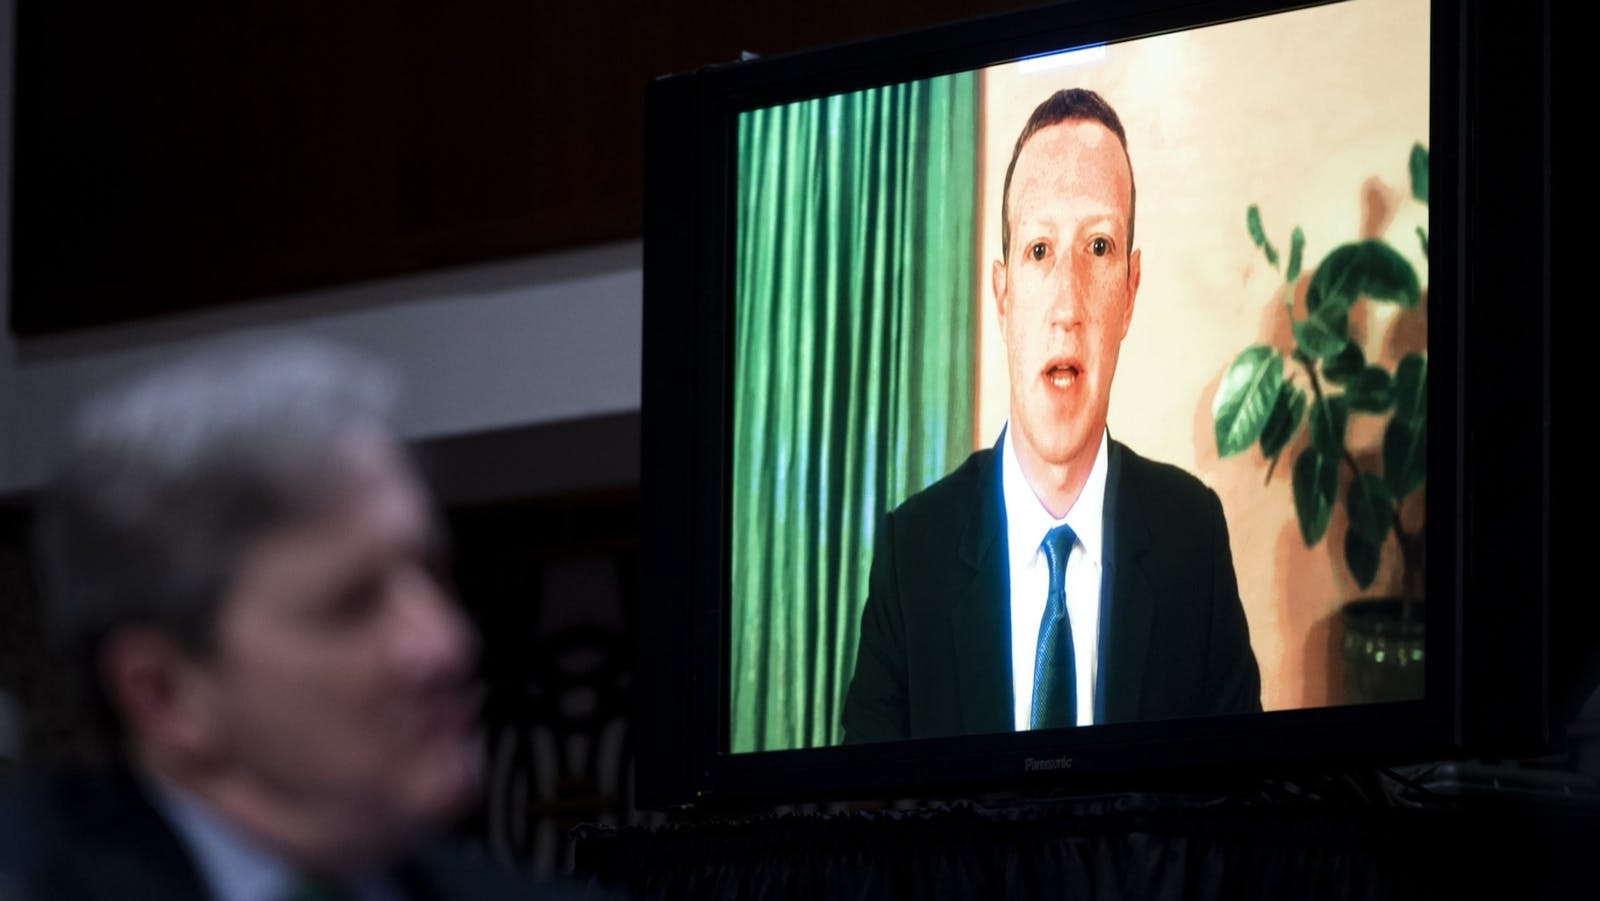 Facebook CEO Mark Zuckerberg speaks remotely during a Senate Judiciary Committee hearing in Washington, D.C., U.S., on Tuesday, Nov. 18, 2020. Photo: Bloomberg